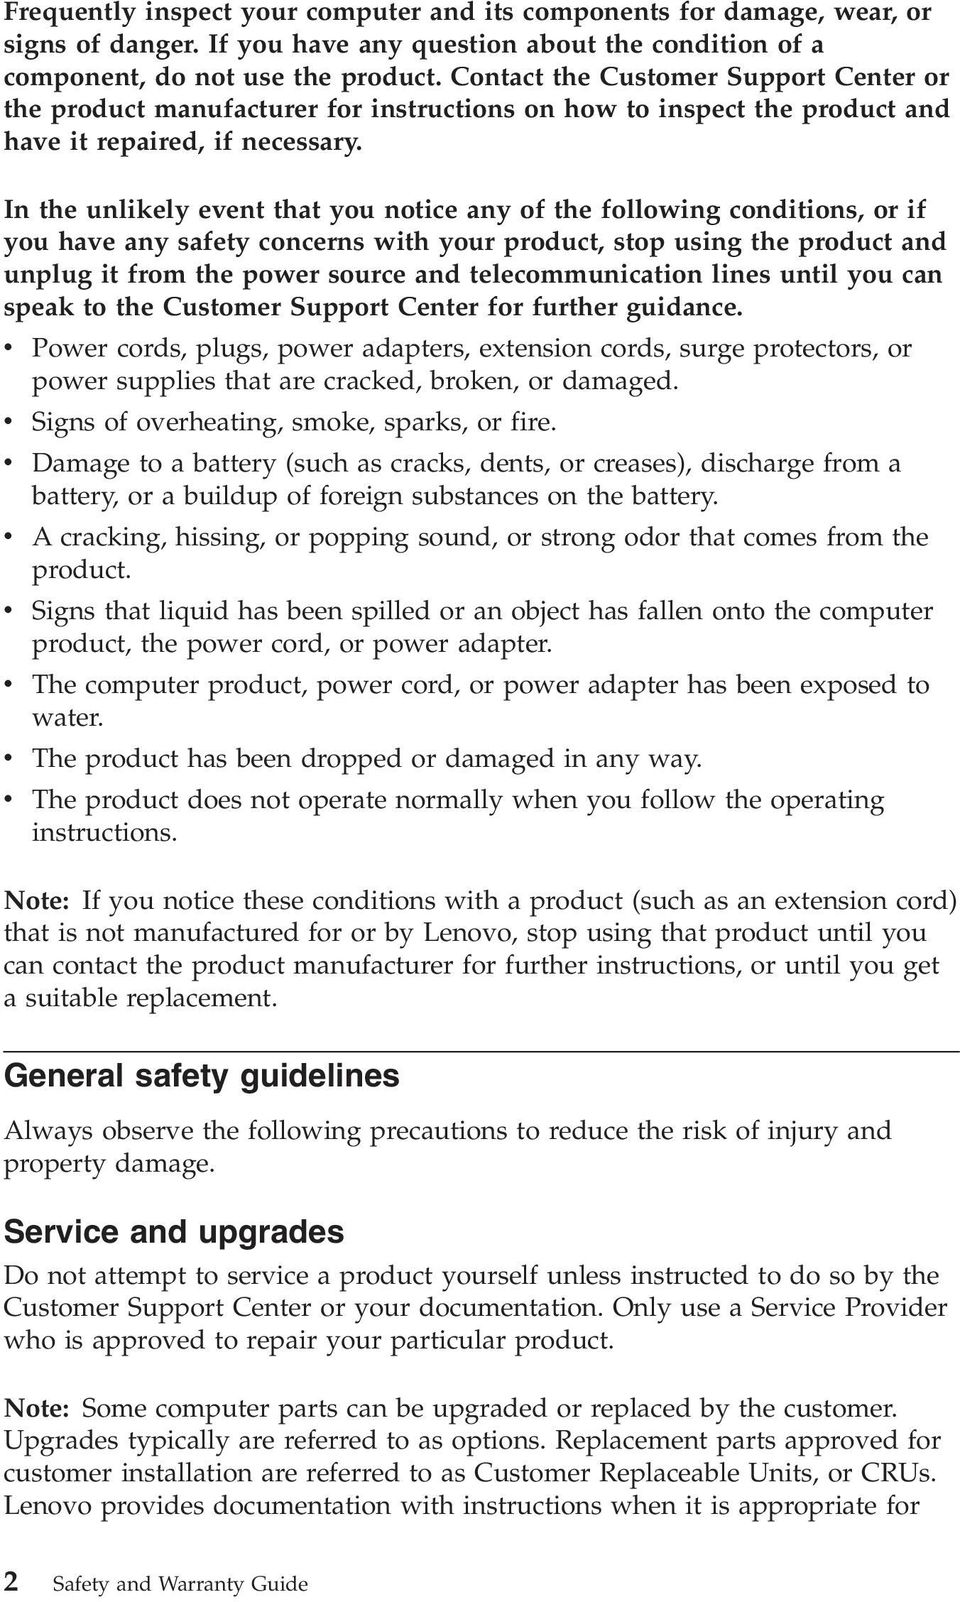 In the unlikely event that you notice any of the following conditions, or if you have any safety concerns with your product, stop using the product and unplug it from the power source and